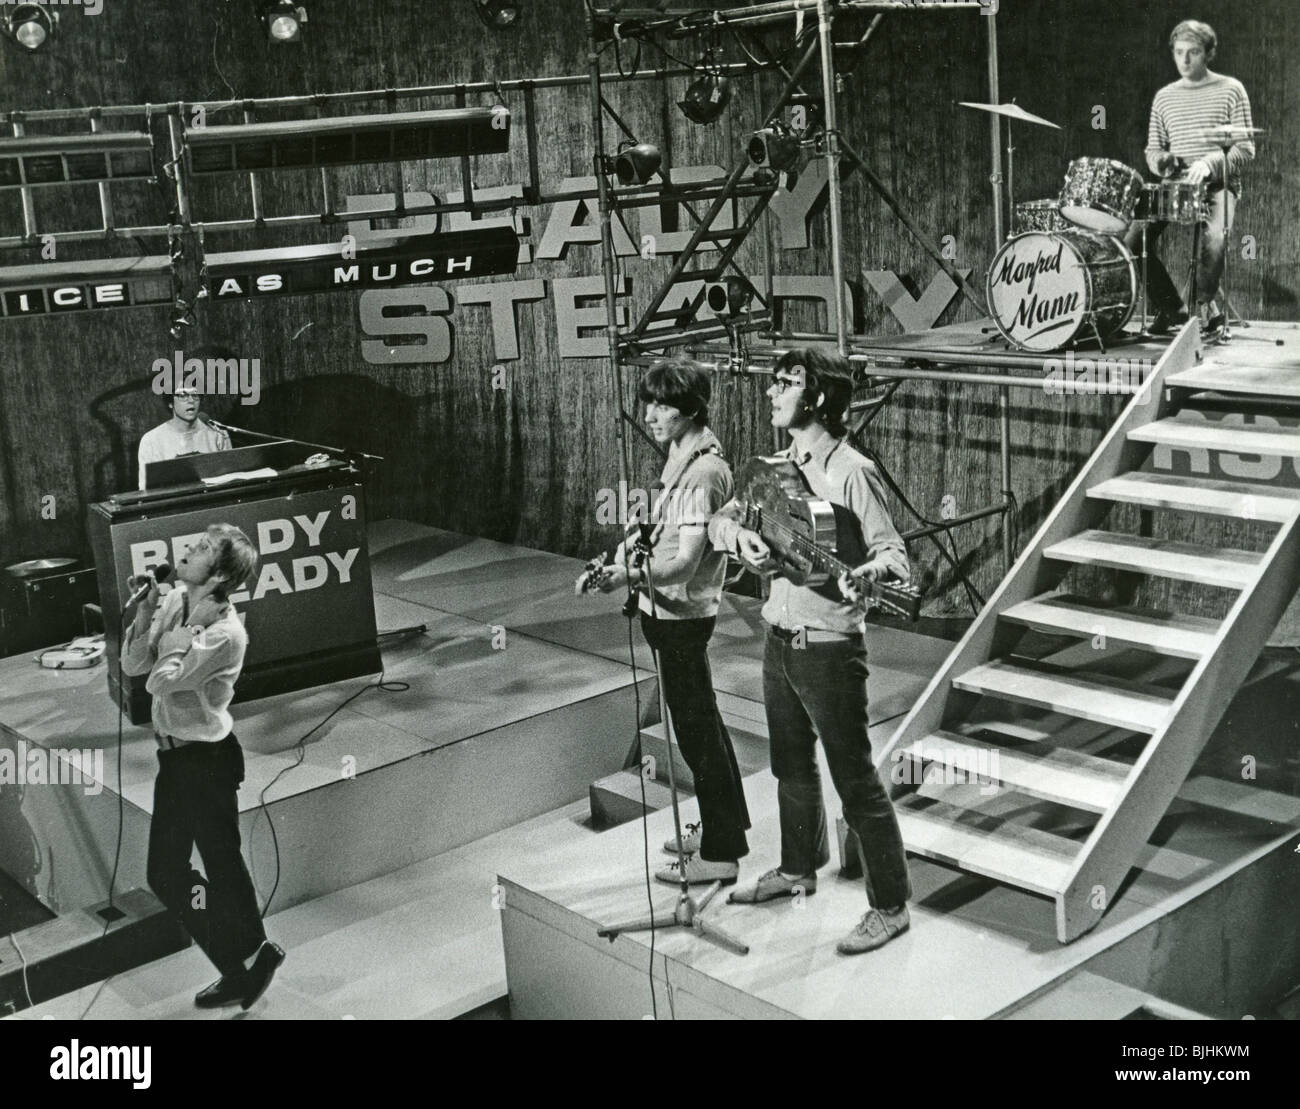 MANFRED MANN on Ready, Steady, Go in 1965. Photo: Tony Gale - Stock Image